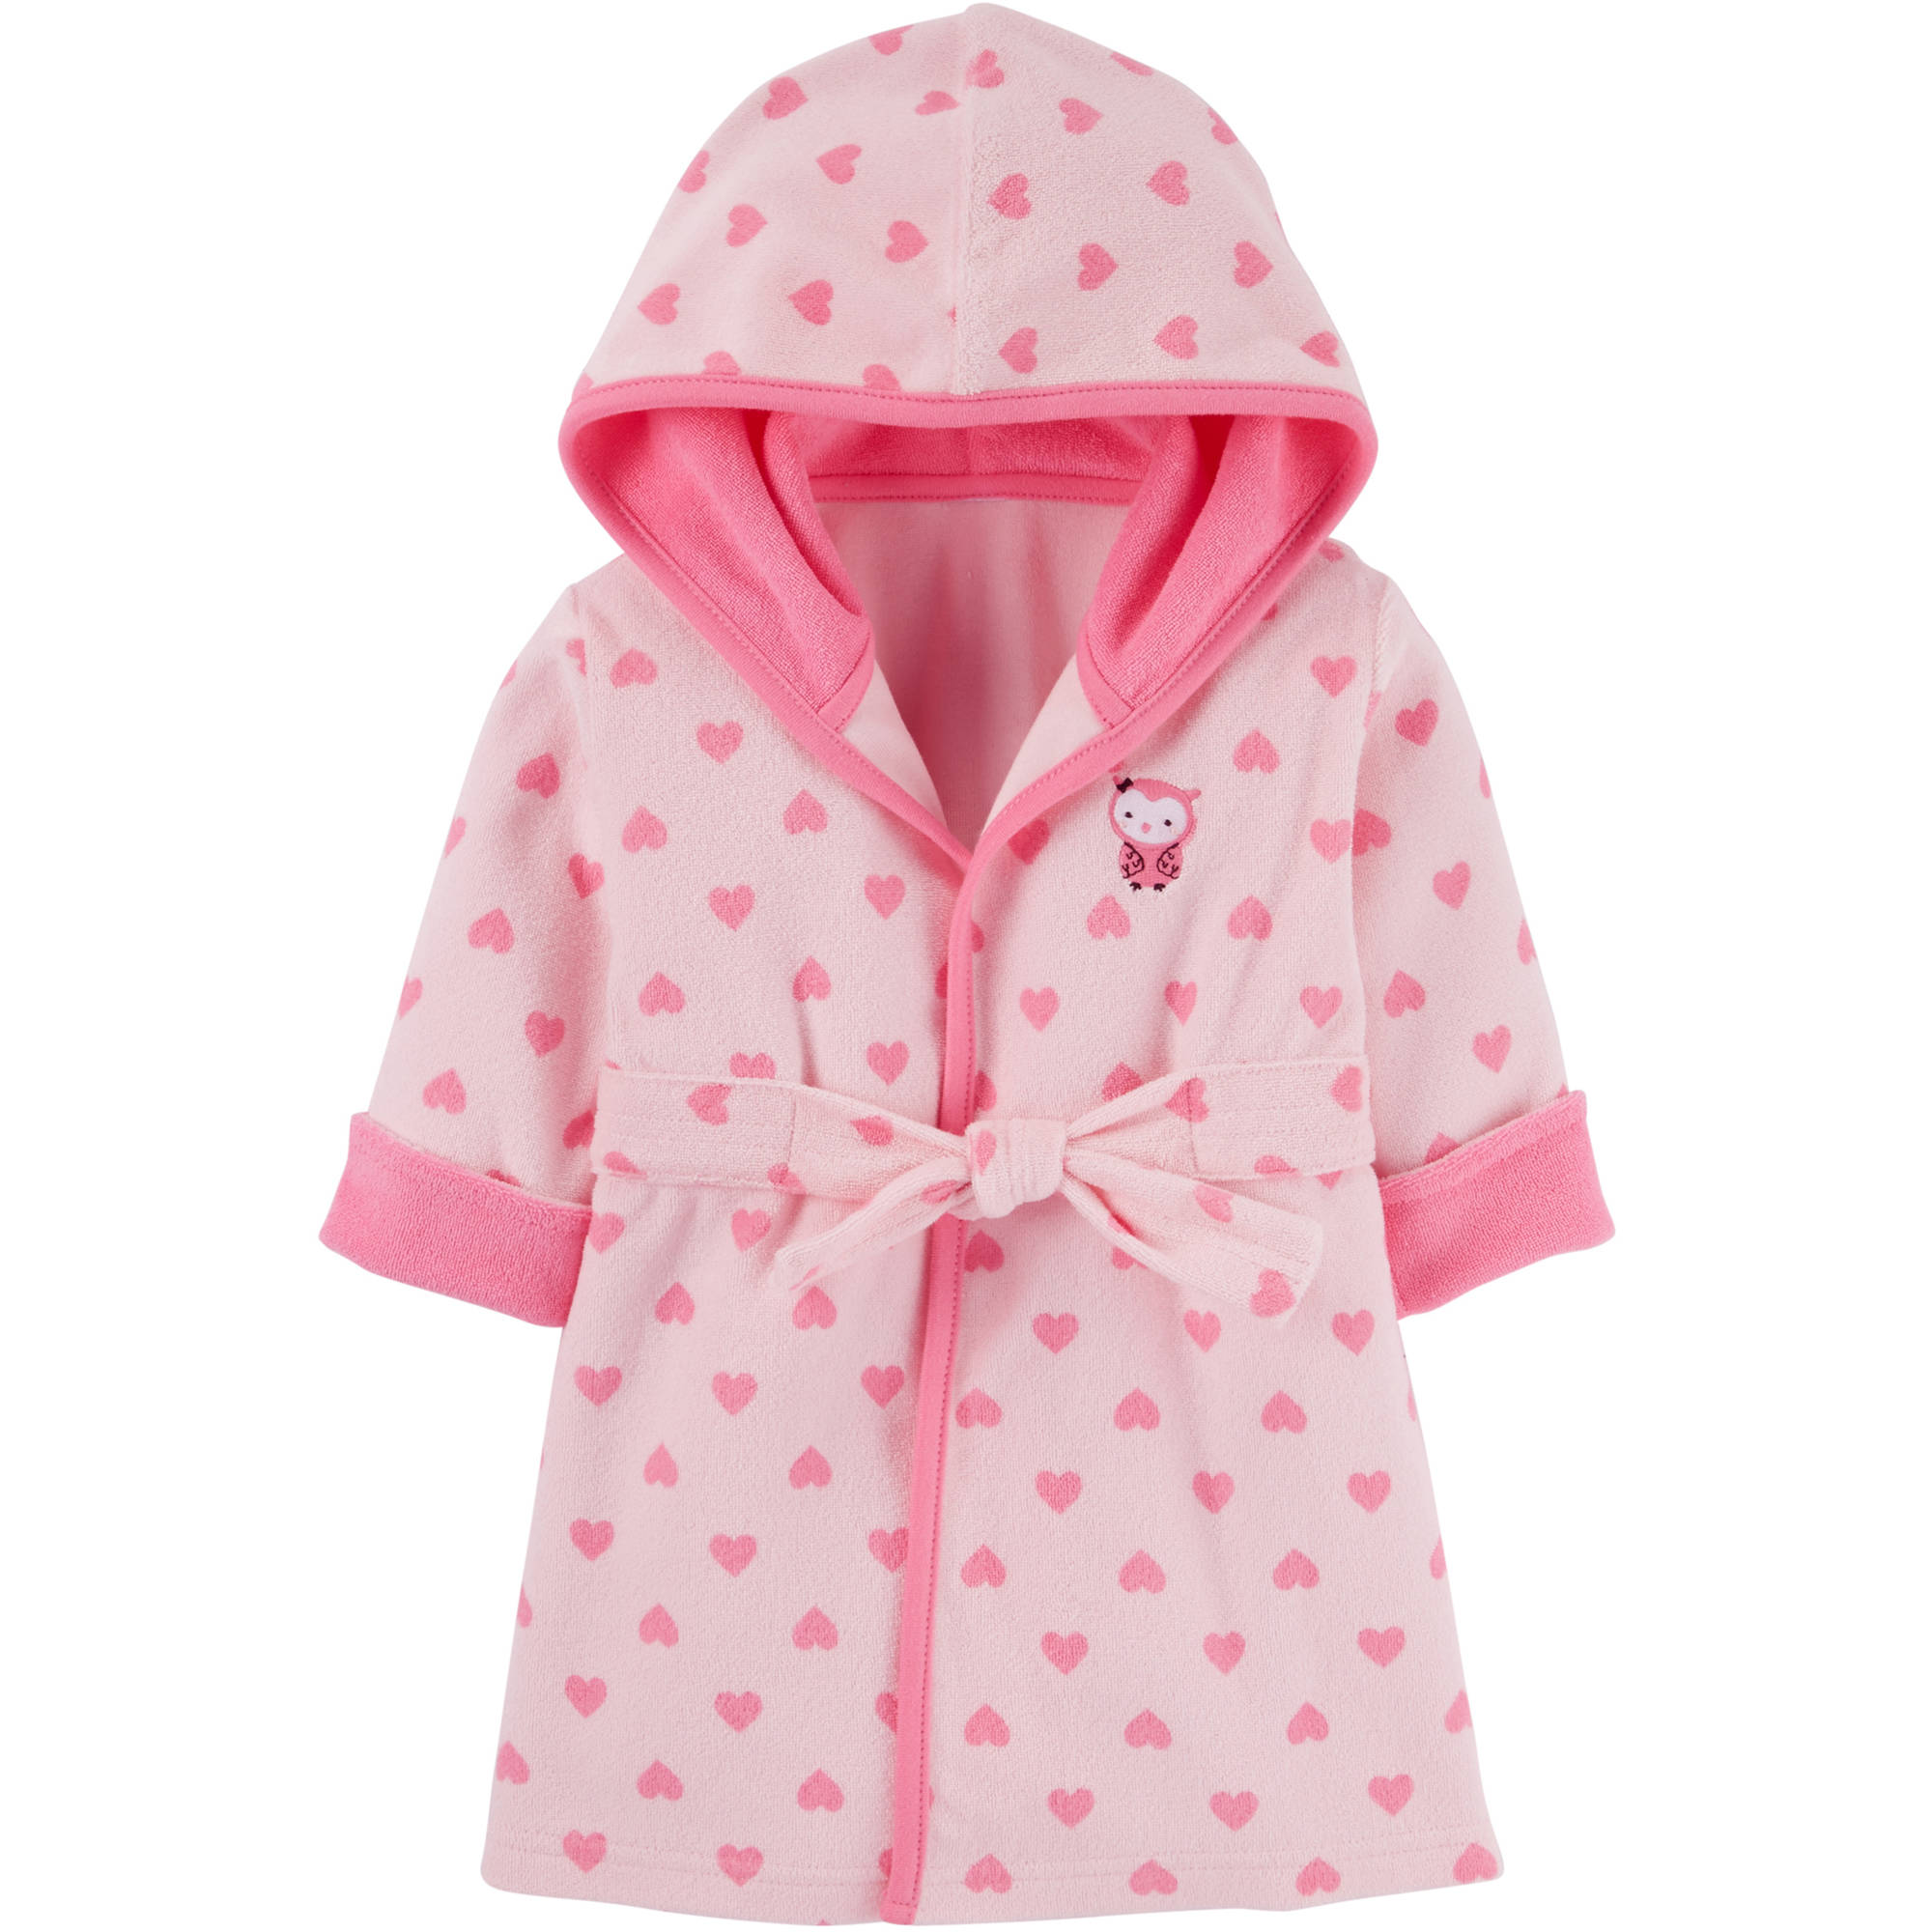 Child Of Mine by Carter's Newborn Baby Girl Robe